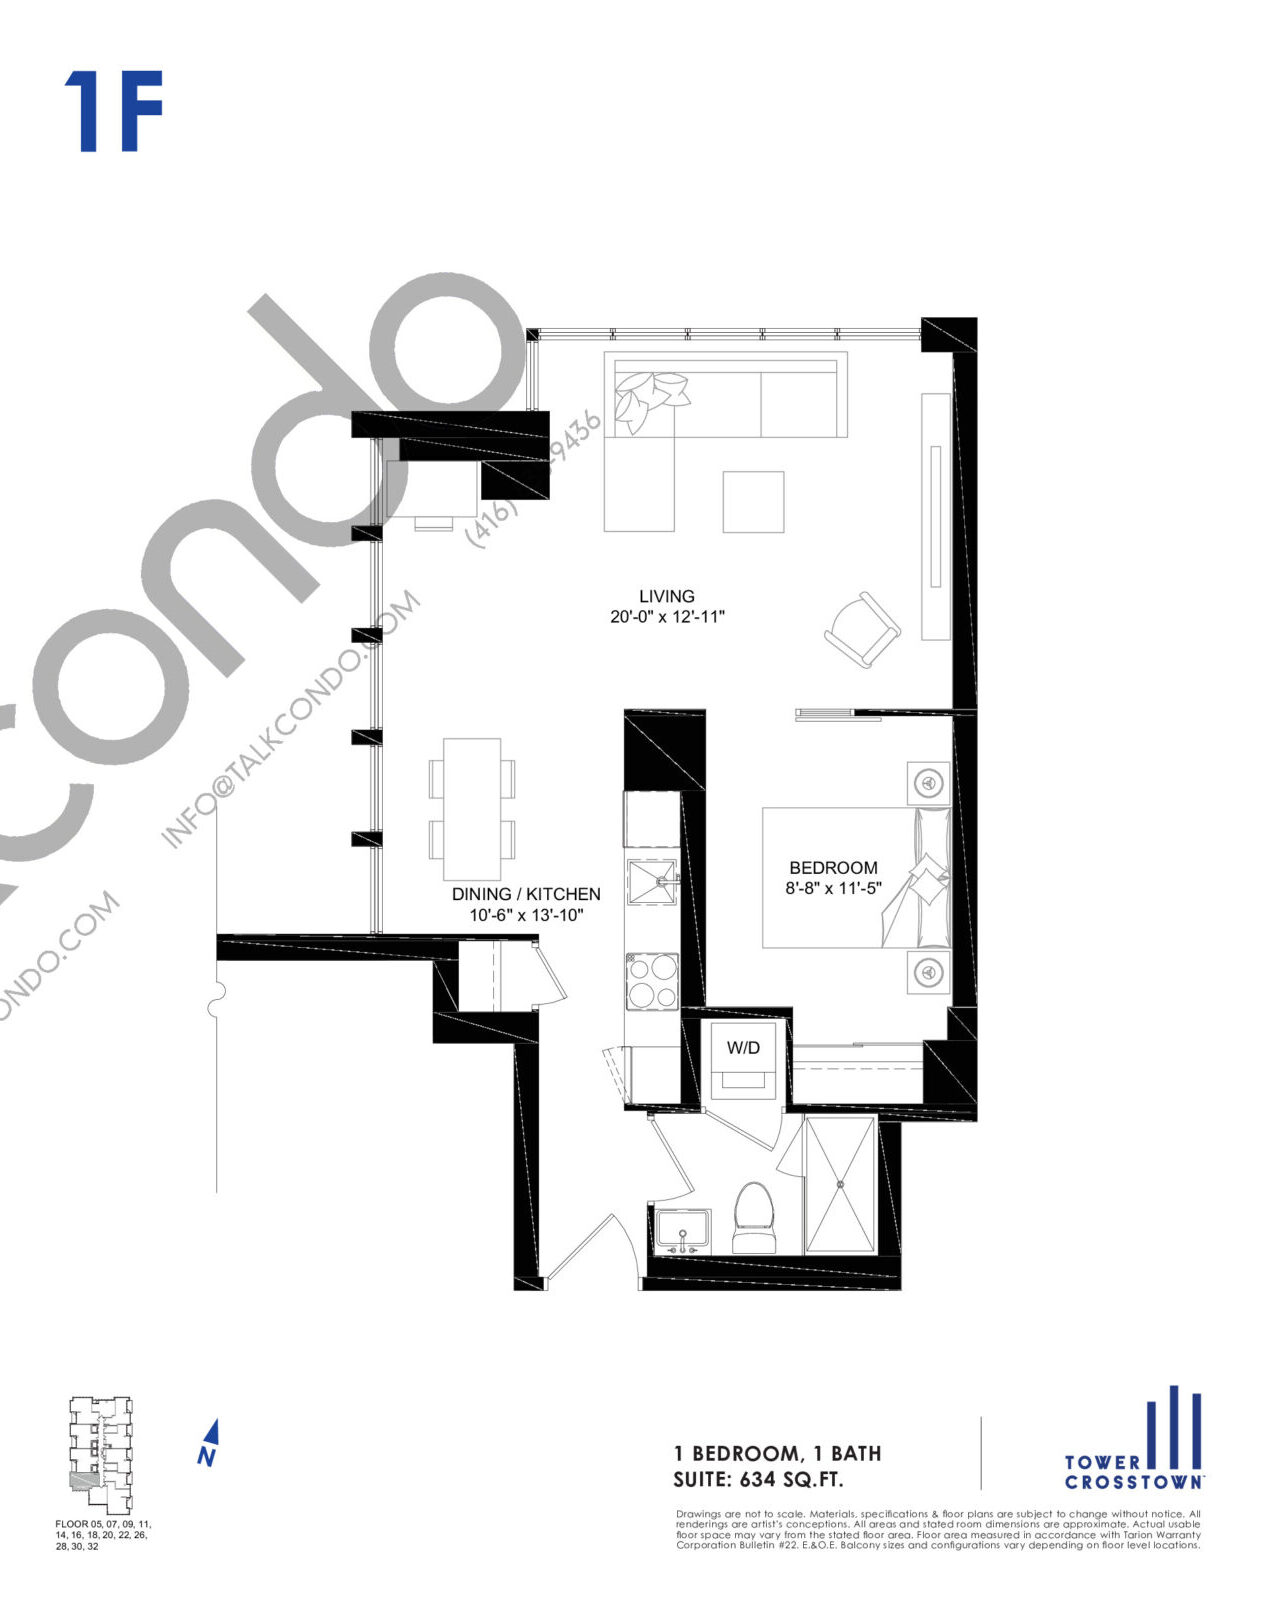 1F Floor Plan at Crosstown Tower 3 Condos - 634 sq.ft